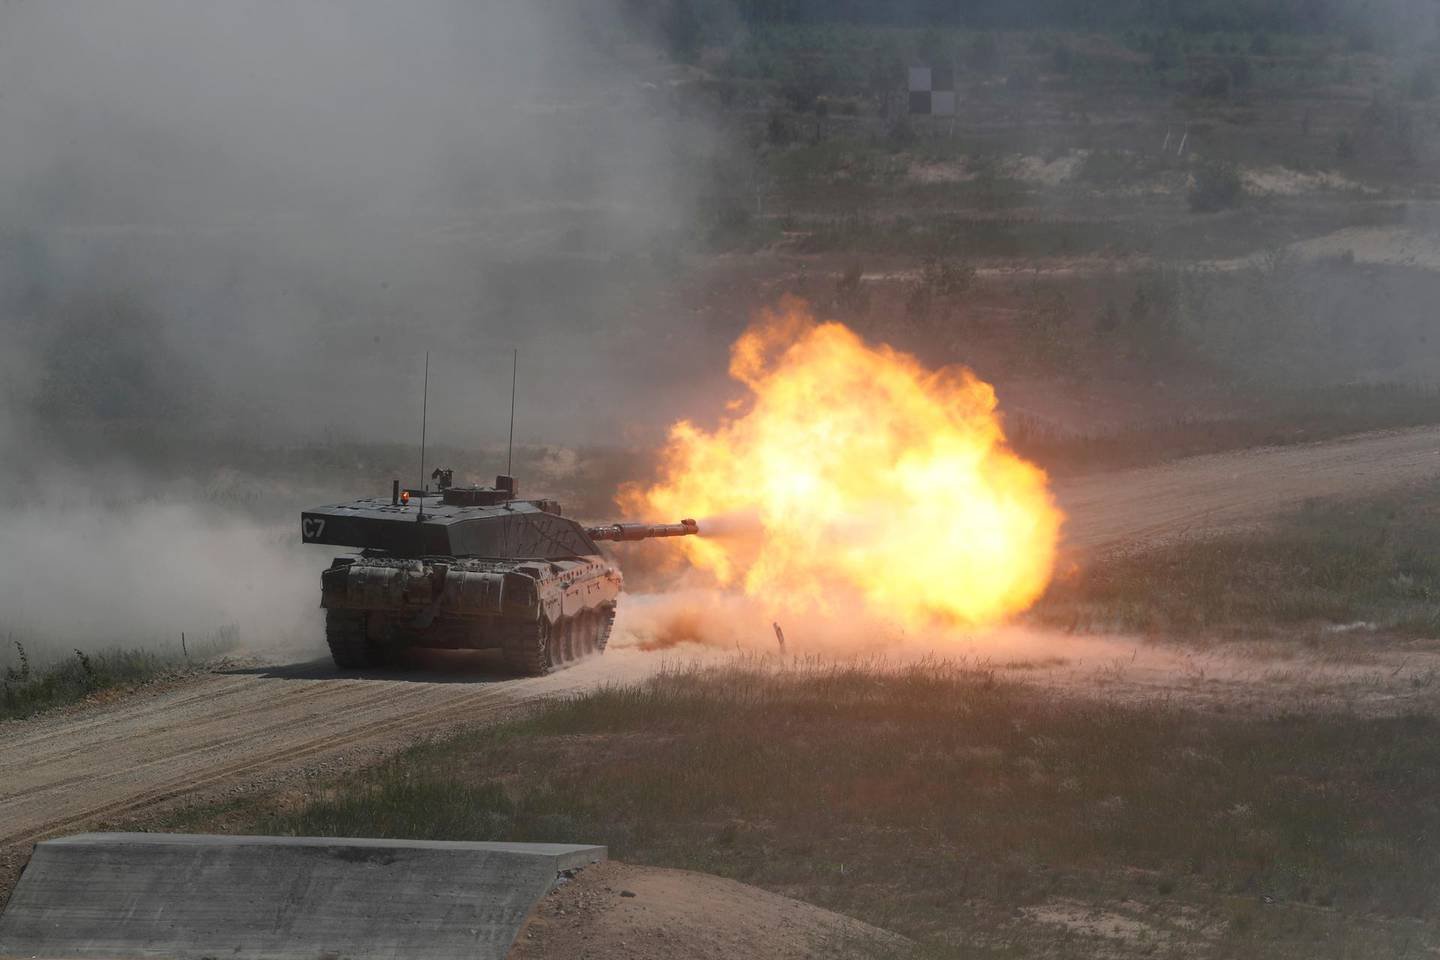 British Army Challenger tank of the NATO enhanced Forward Presence battle group based in Estonia, fires during certification field tactical exercise in Adazi, Latvia June 18, 2020. REUTERS/Ints Kalnins